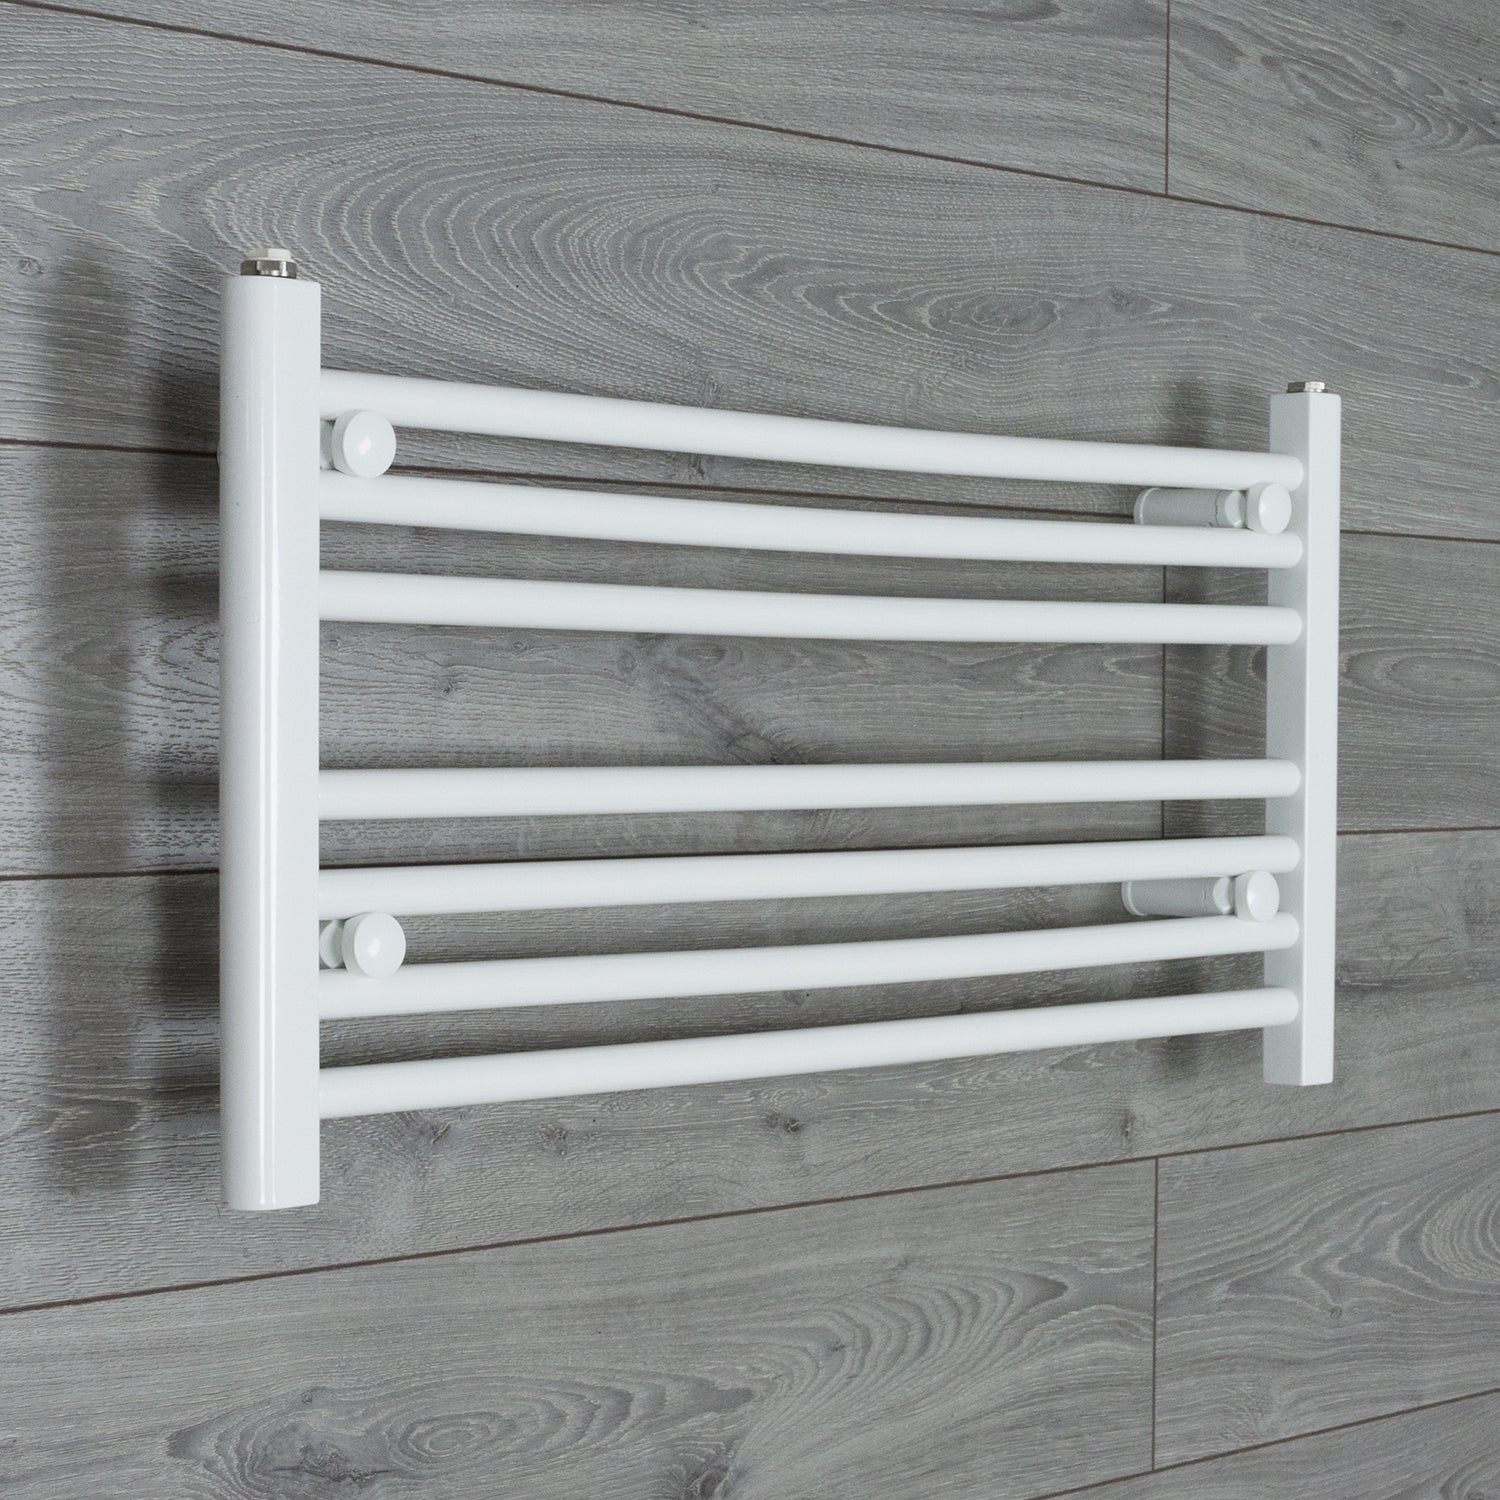 700mm Wide 400mm High Flat WHITE Pre-Filled Electric Heated Towel Rail Radiator HTR